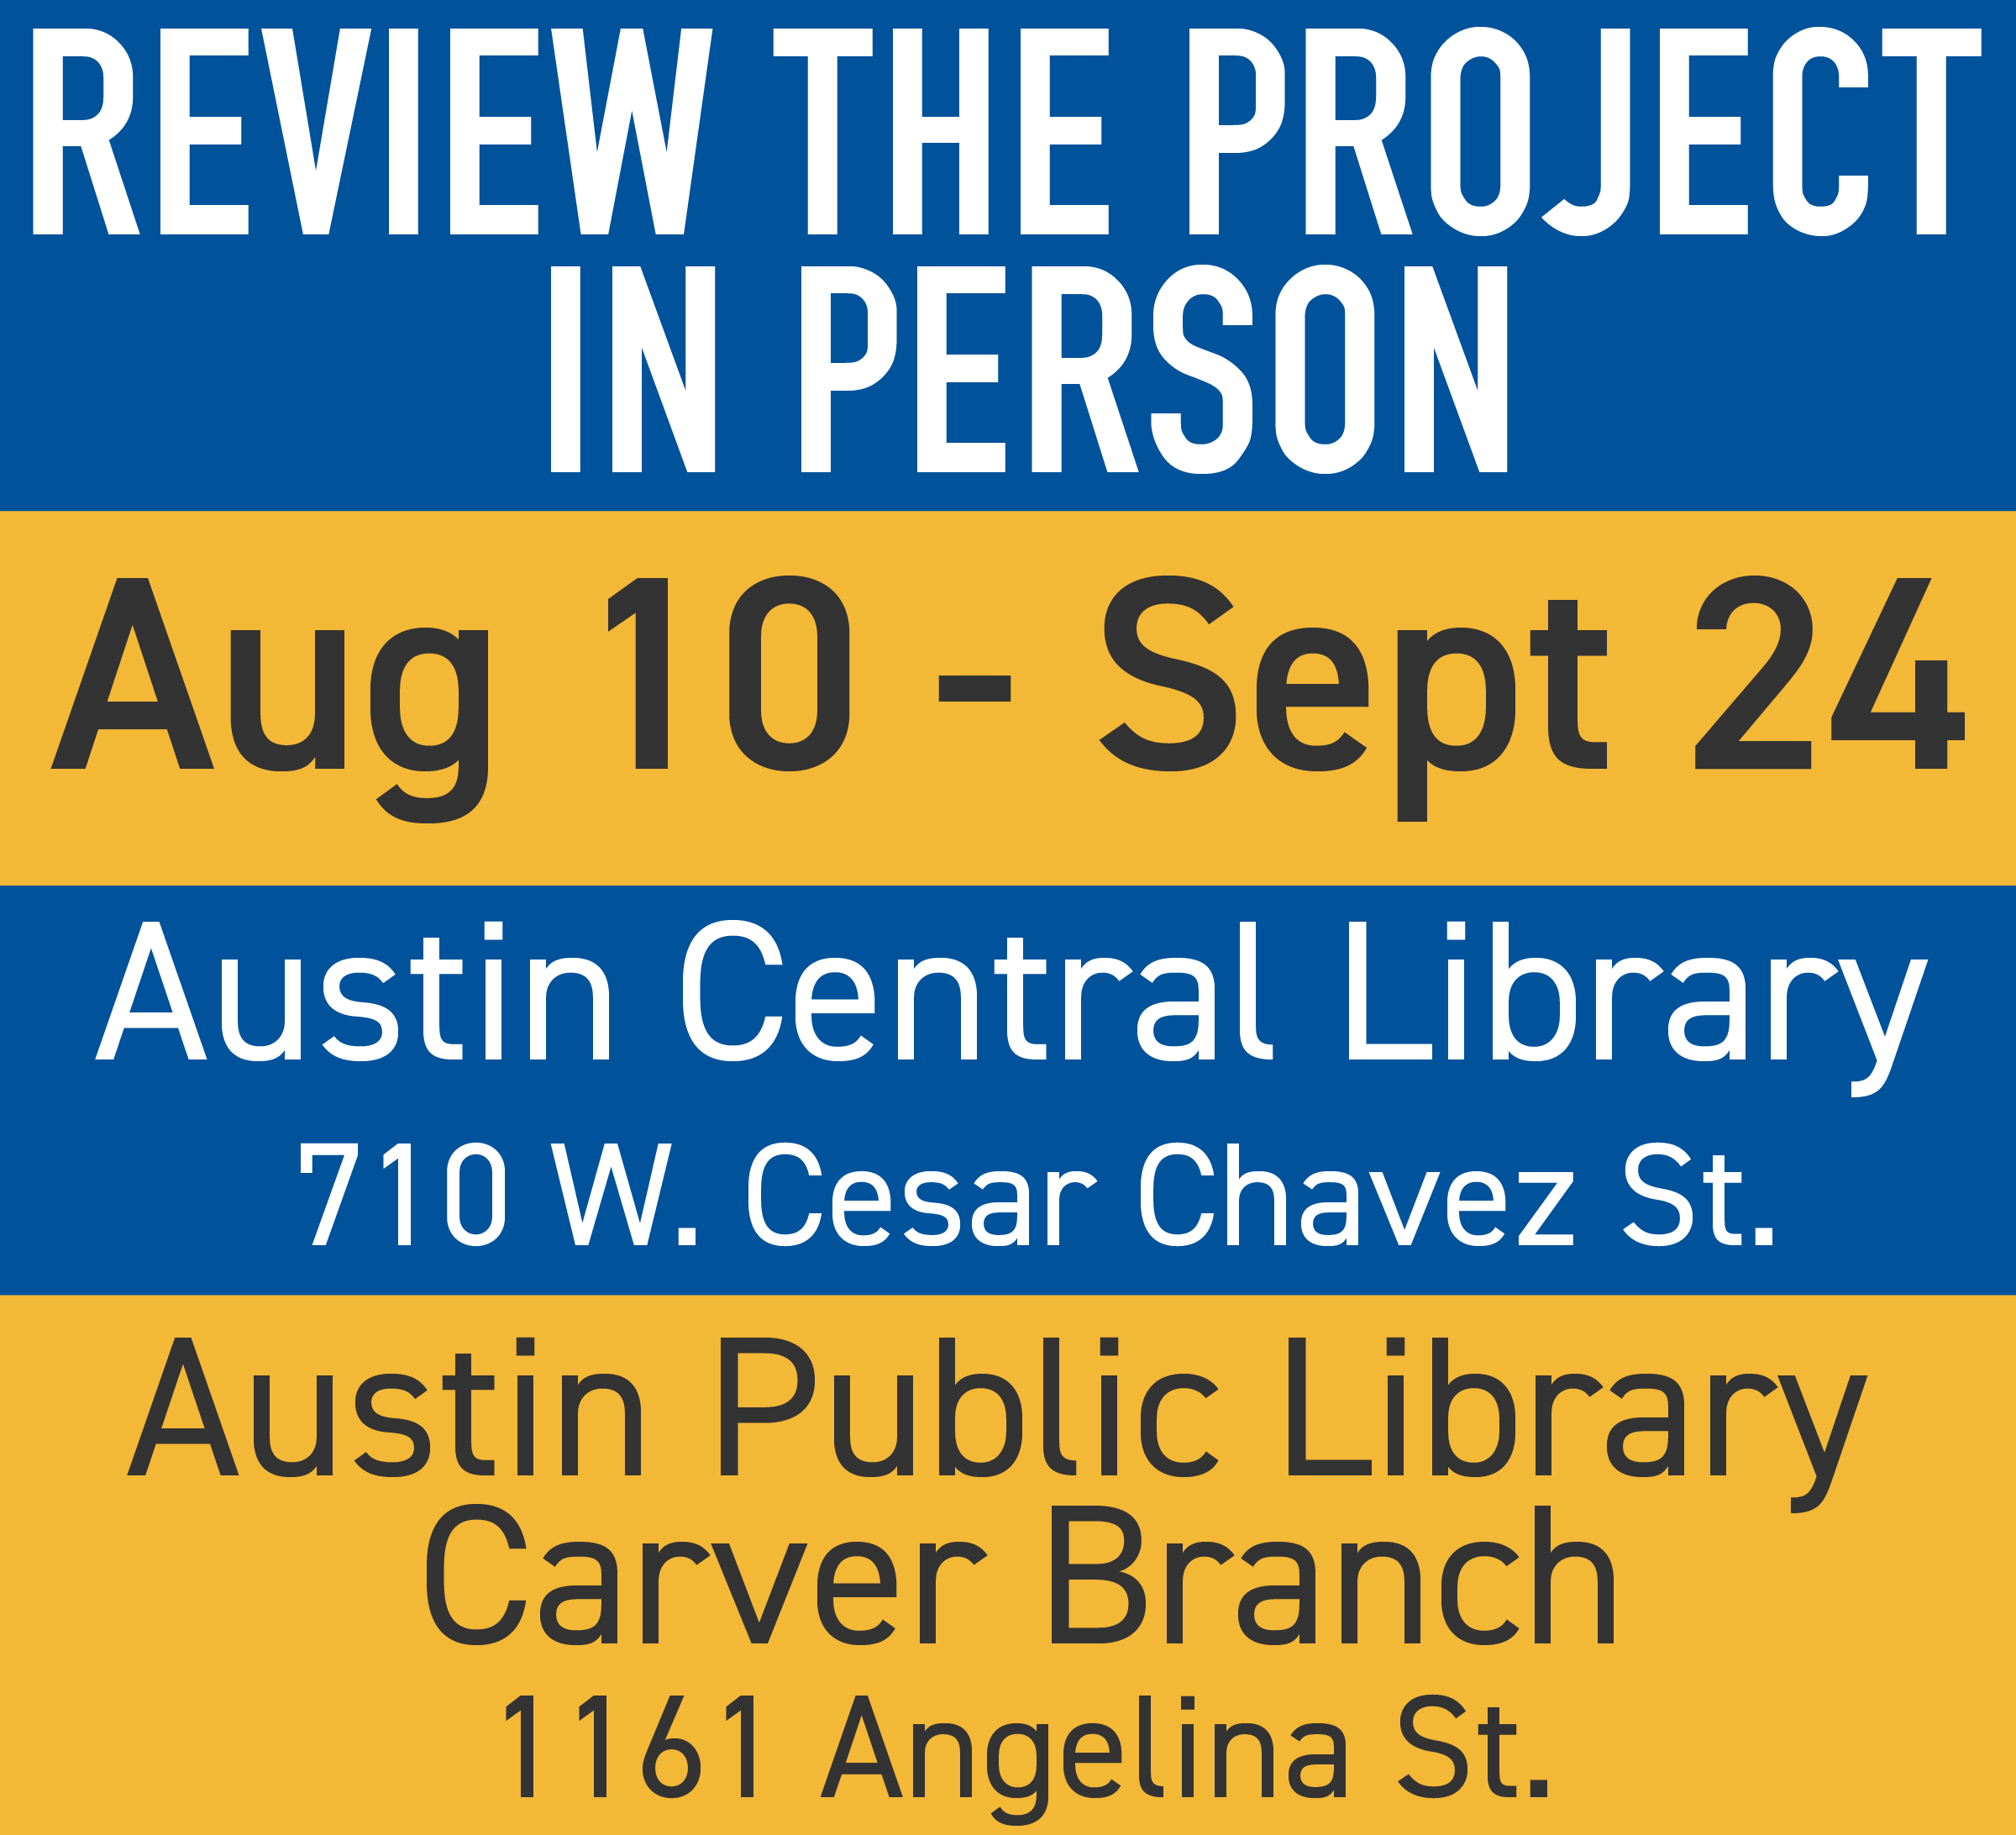 I-35 Library Open House